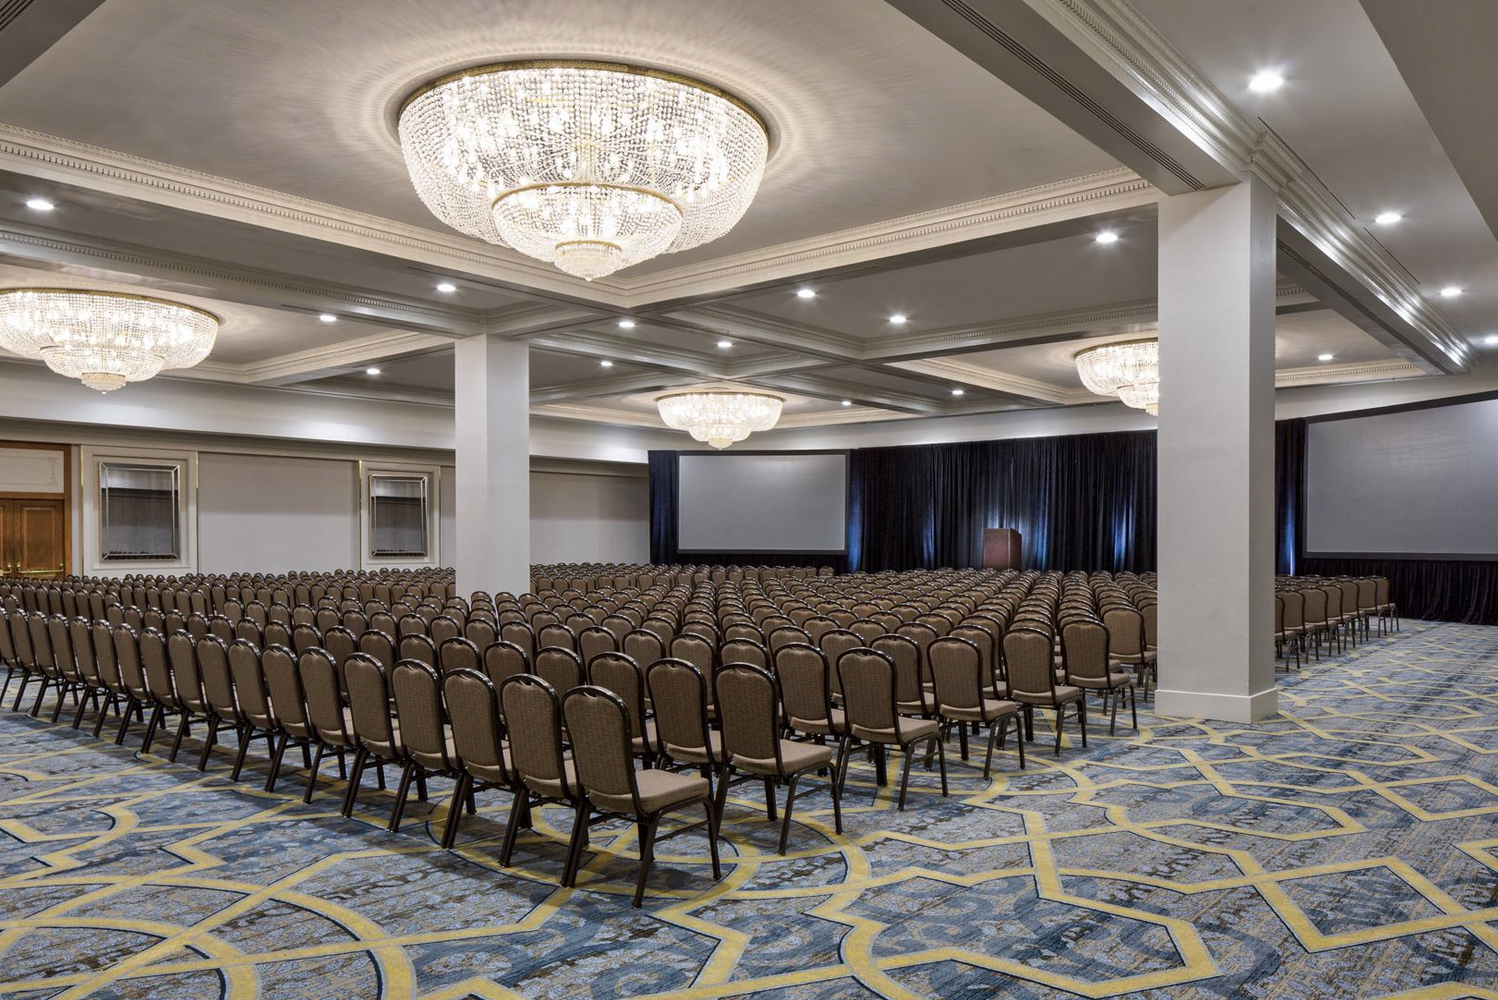 The meeting venues of the property include the St. James Ballroom, St. Charles Ballroom, Jefferson Ballroom and 16 separate meeting rooms.